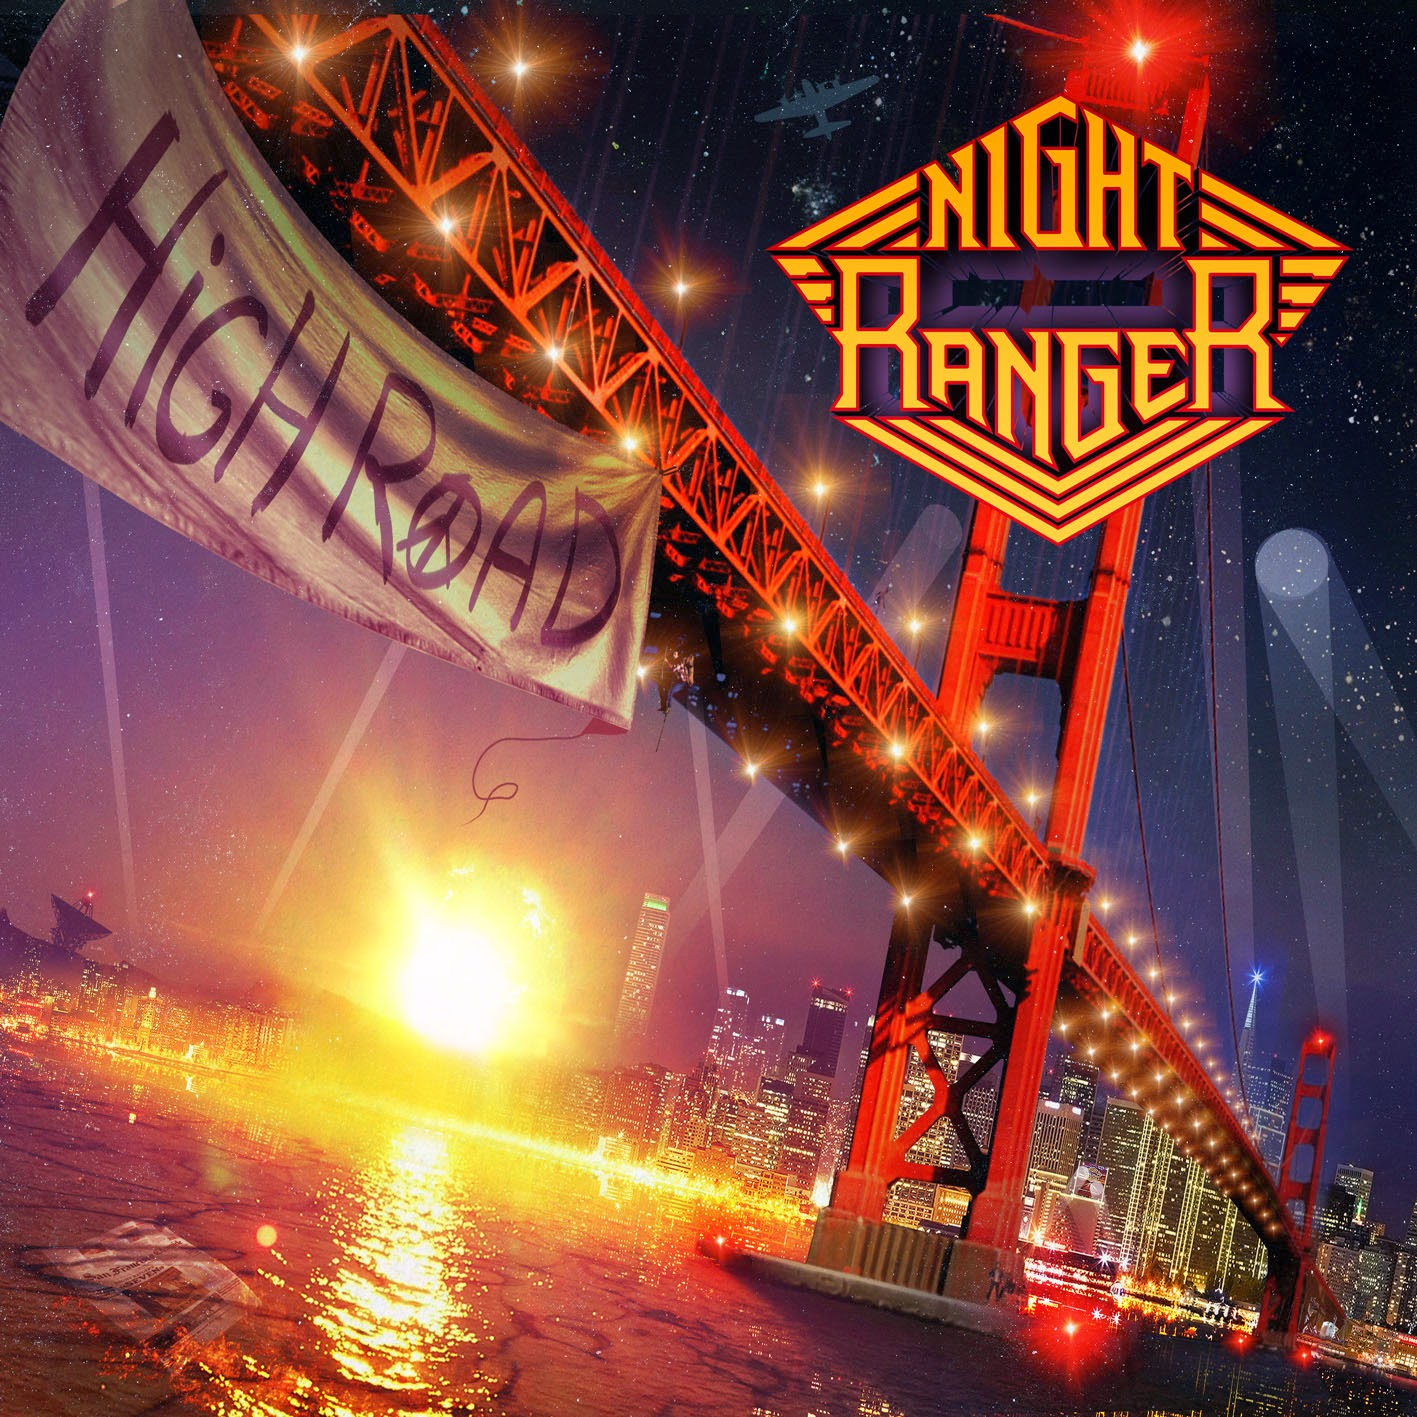 http://rock-and-metal-4-you.blogspot.de/2014/06/cd-review-night-ranger-high-road.html